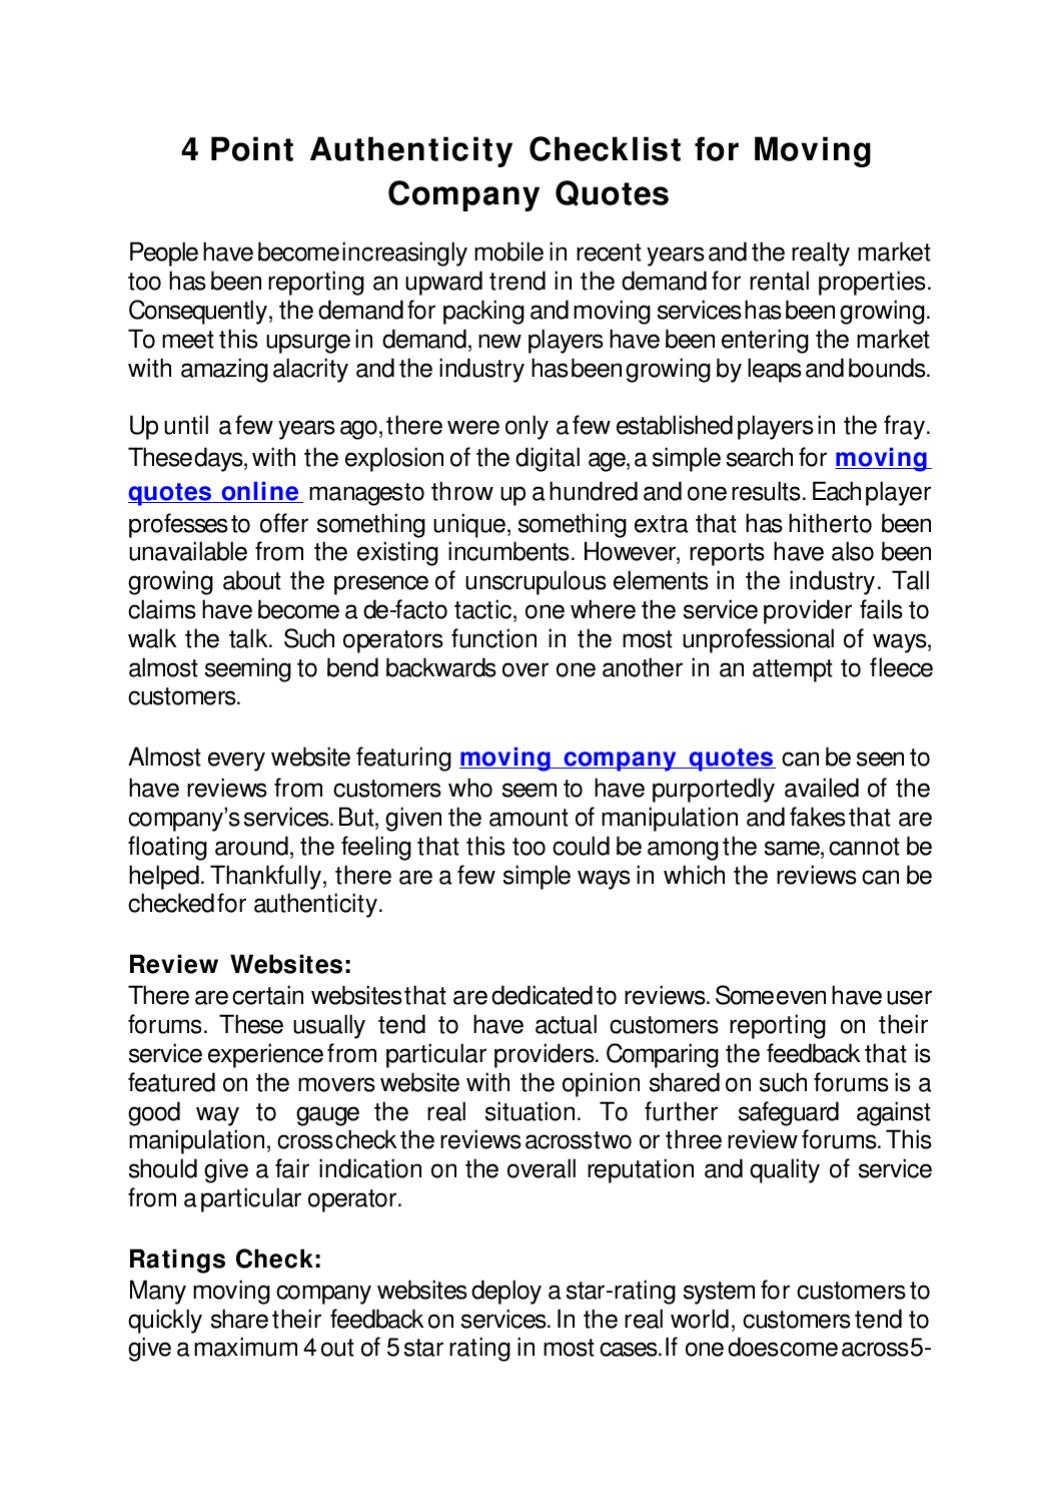 Moving Company Quotes >> 4 Point Authenticity Checklist For Moving Company Quotes By